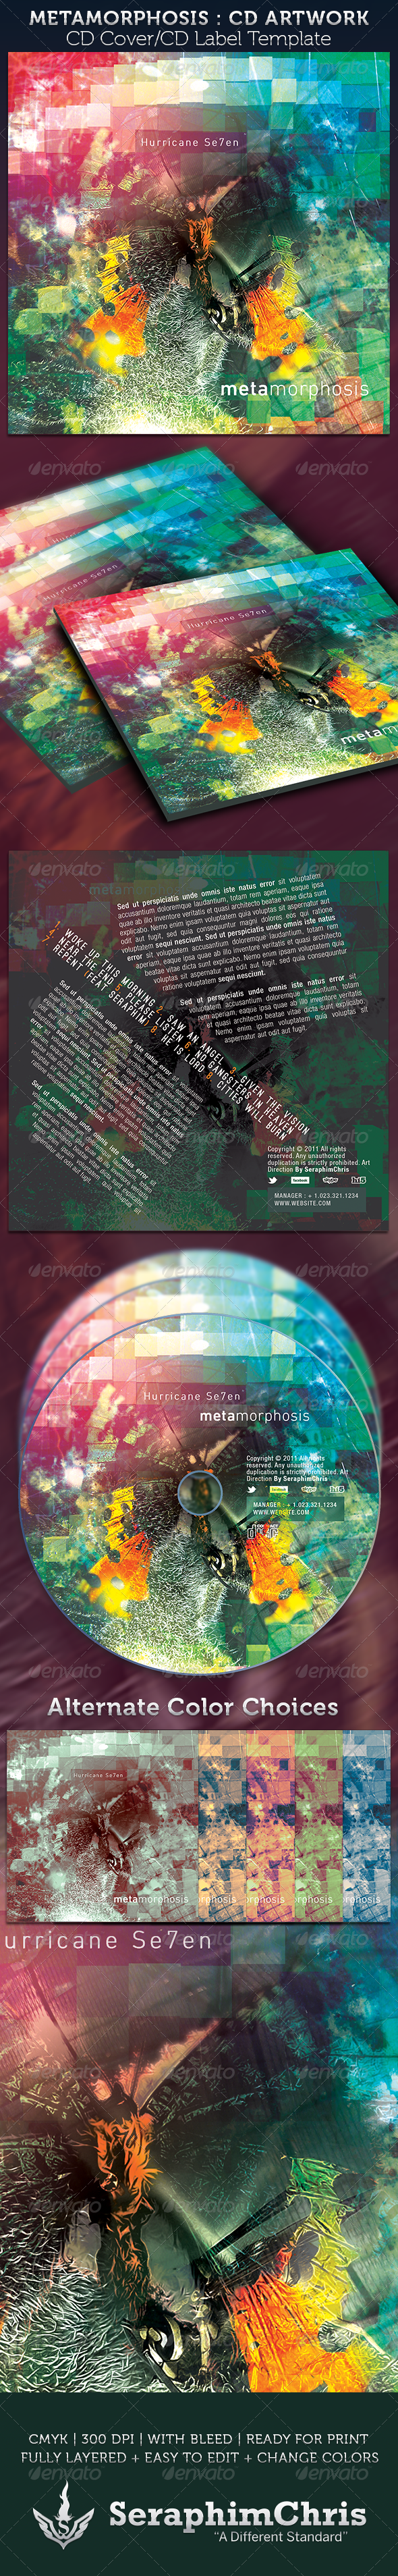 Metamorphosis CD Cover Artwork Template - CD & DVD artwork Print Templates